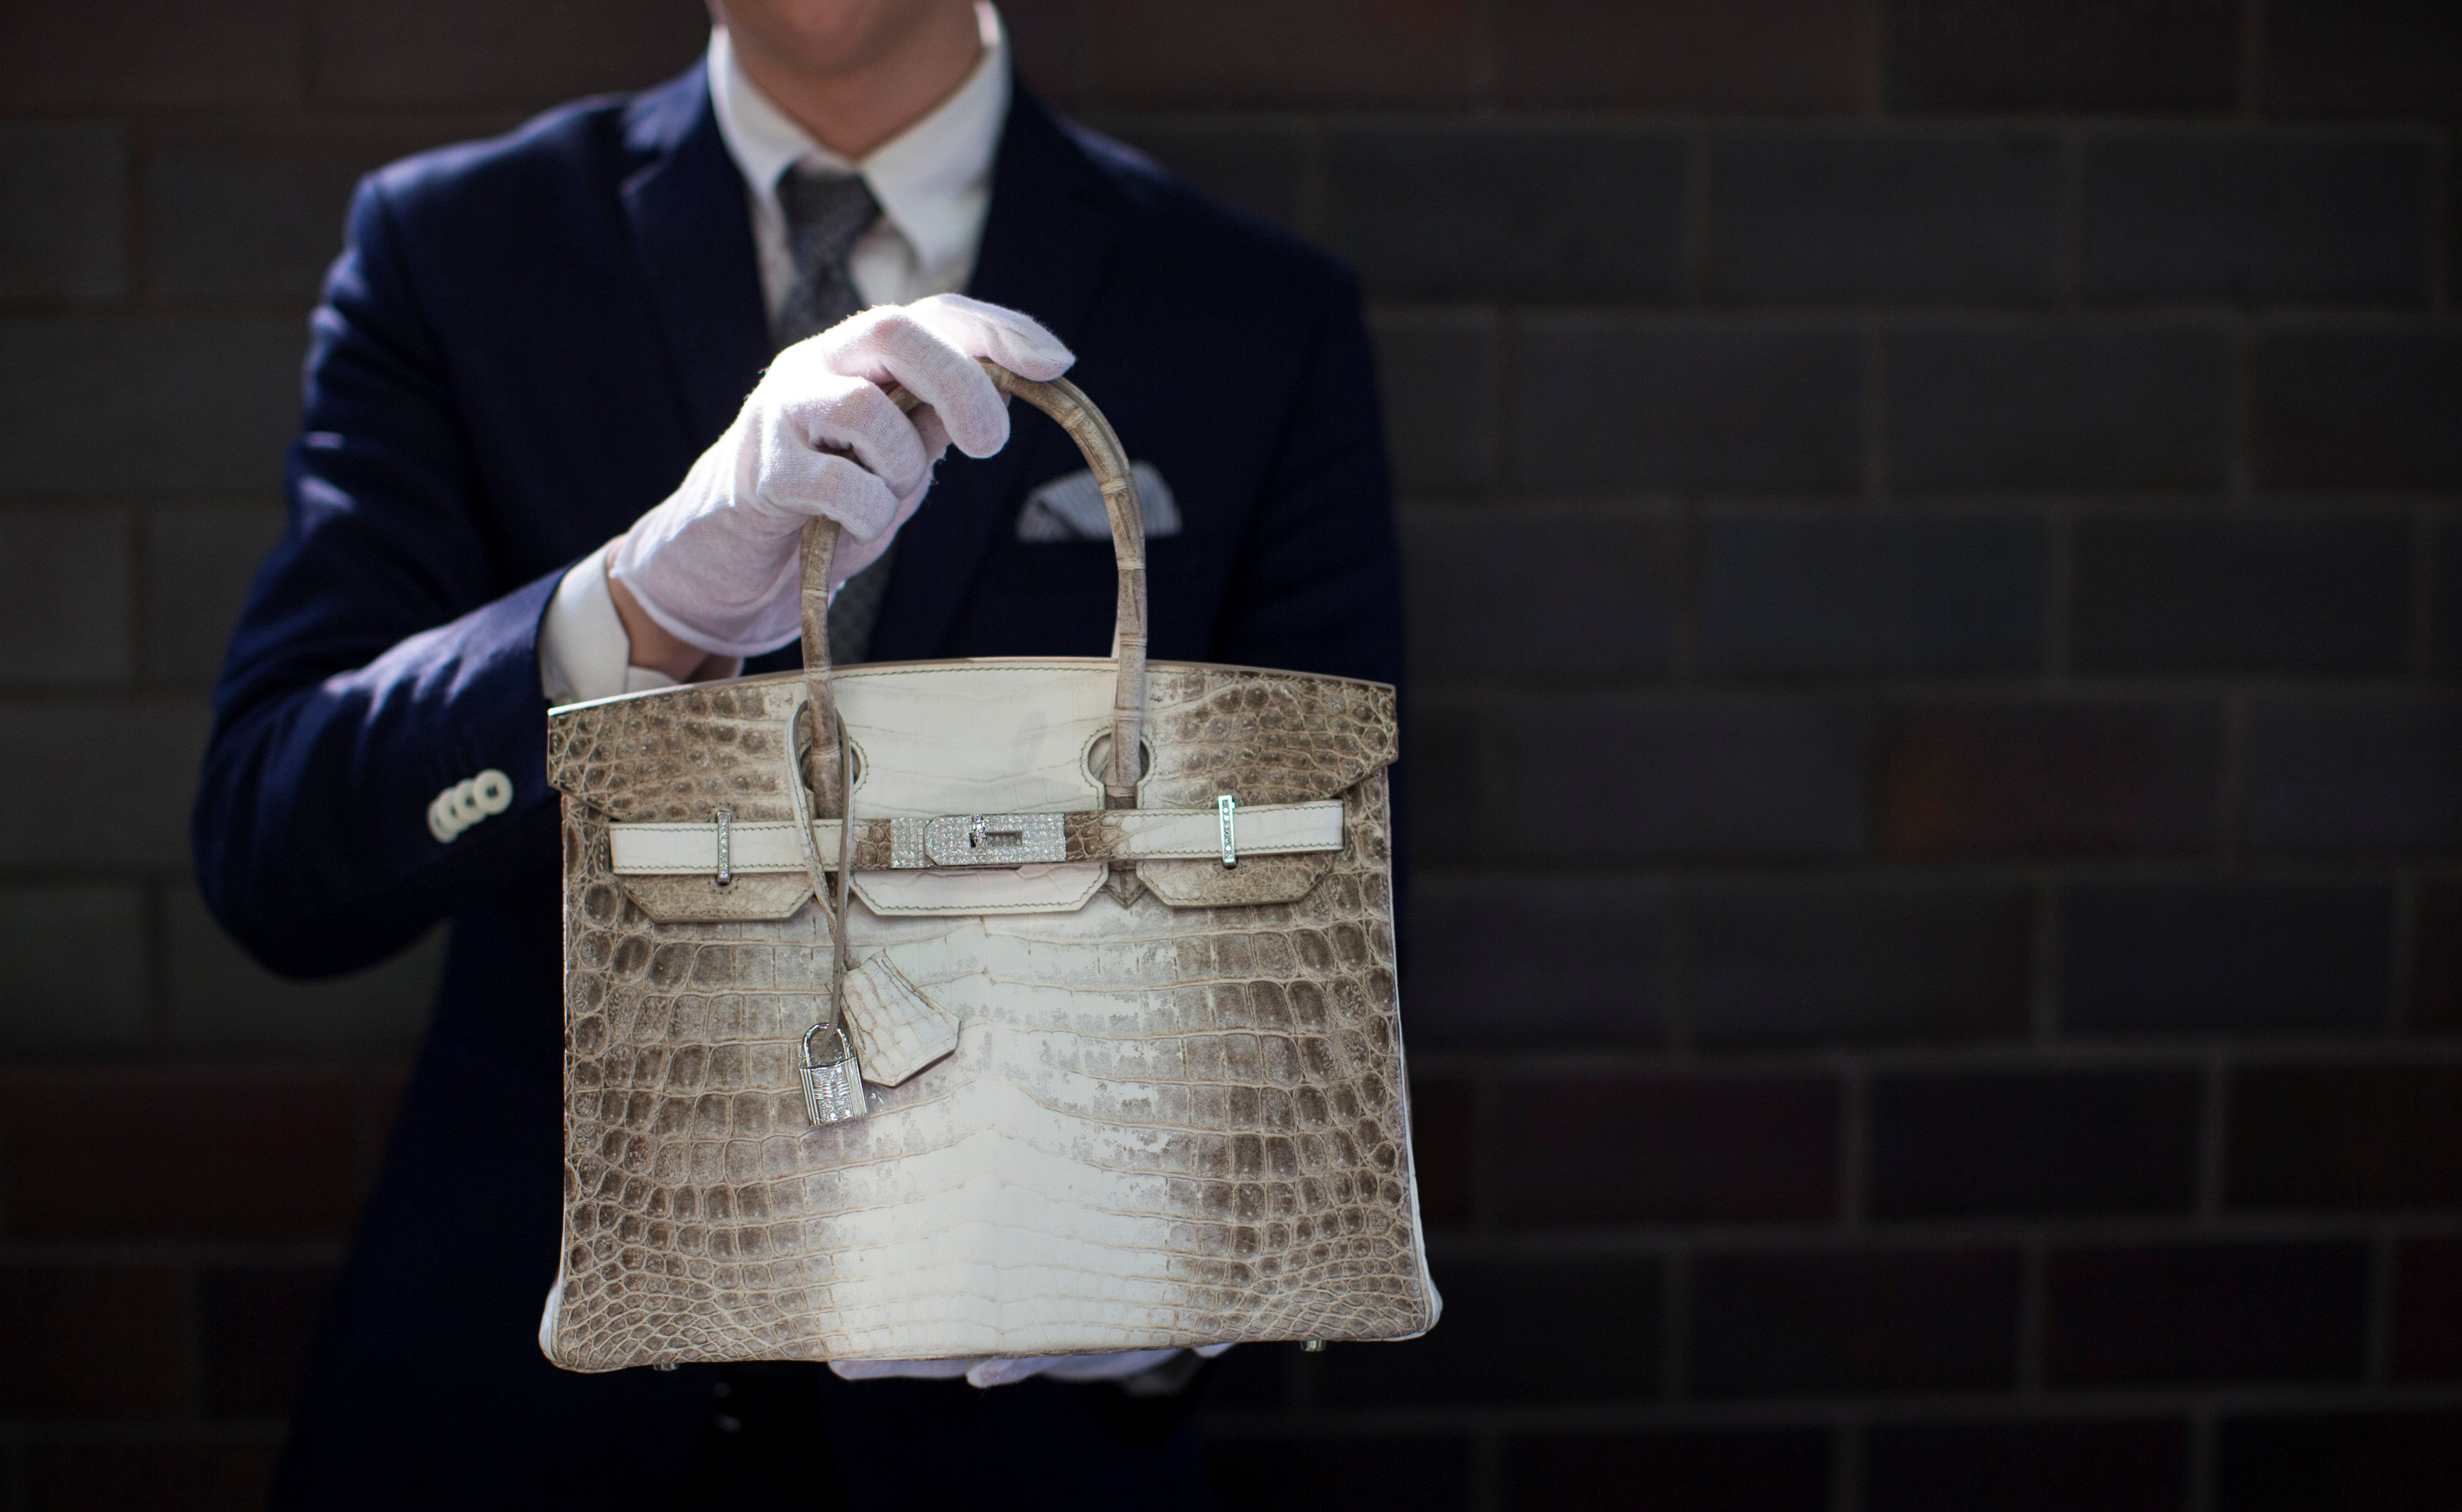 The V&A's latest exhibition is a historical study of handbags